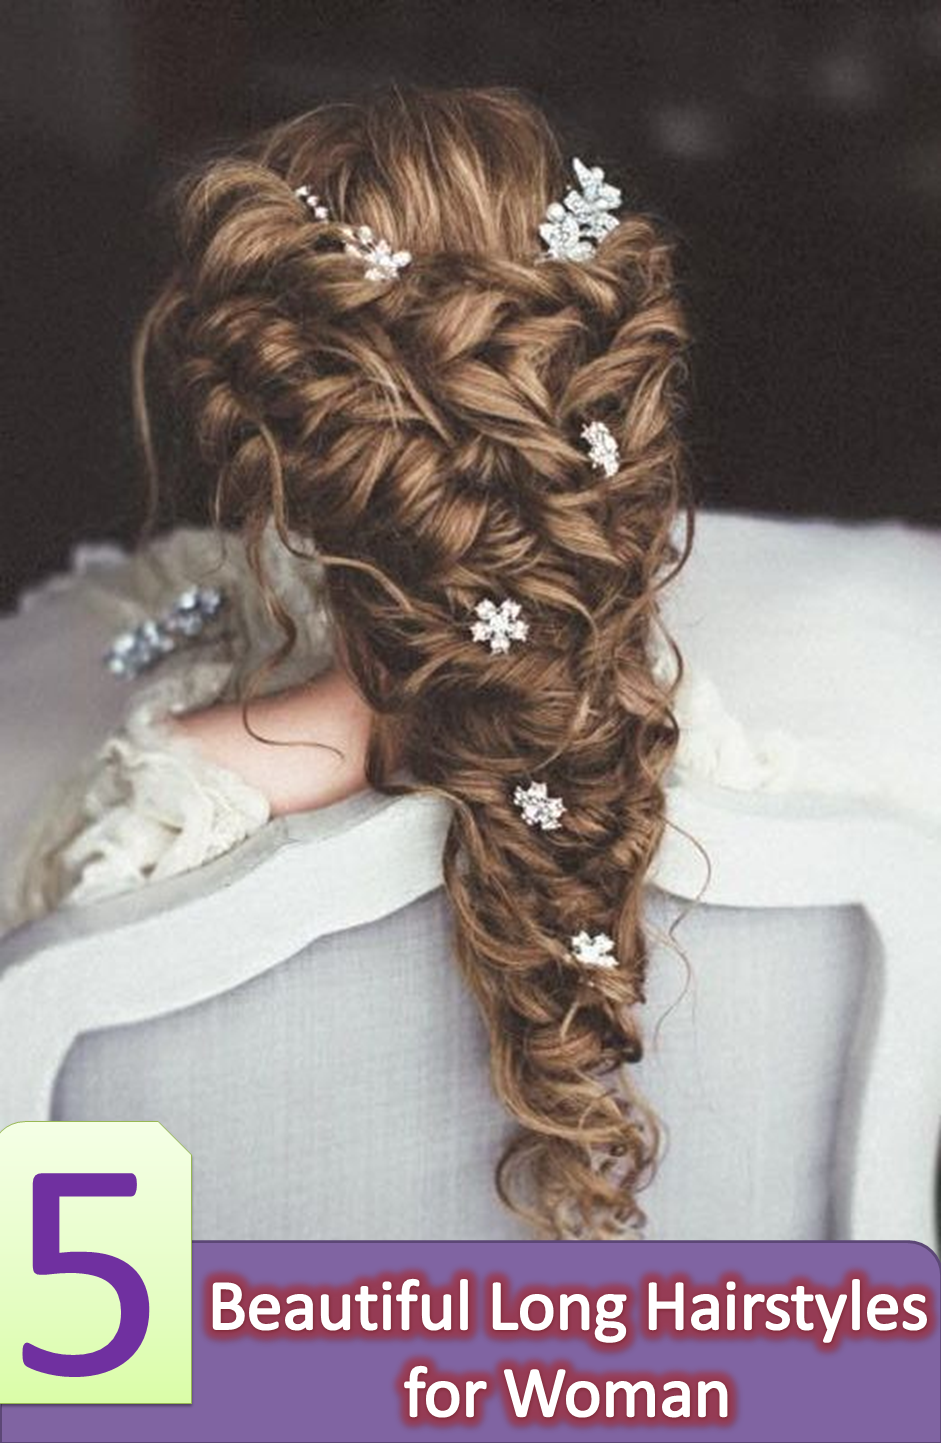 extremely gorgeous long hairstyles for woman to make other envious